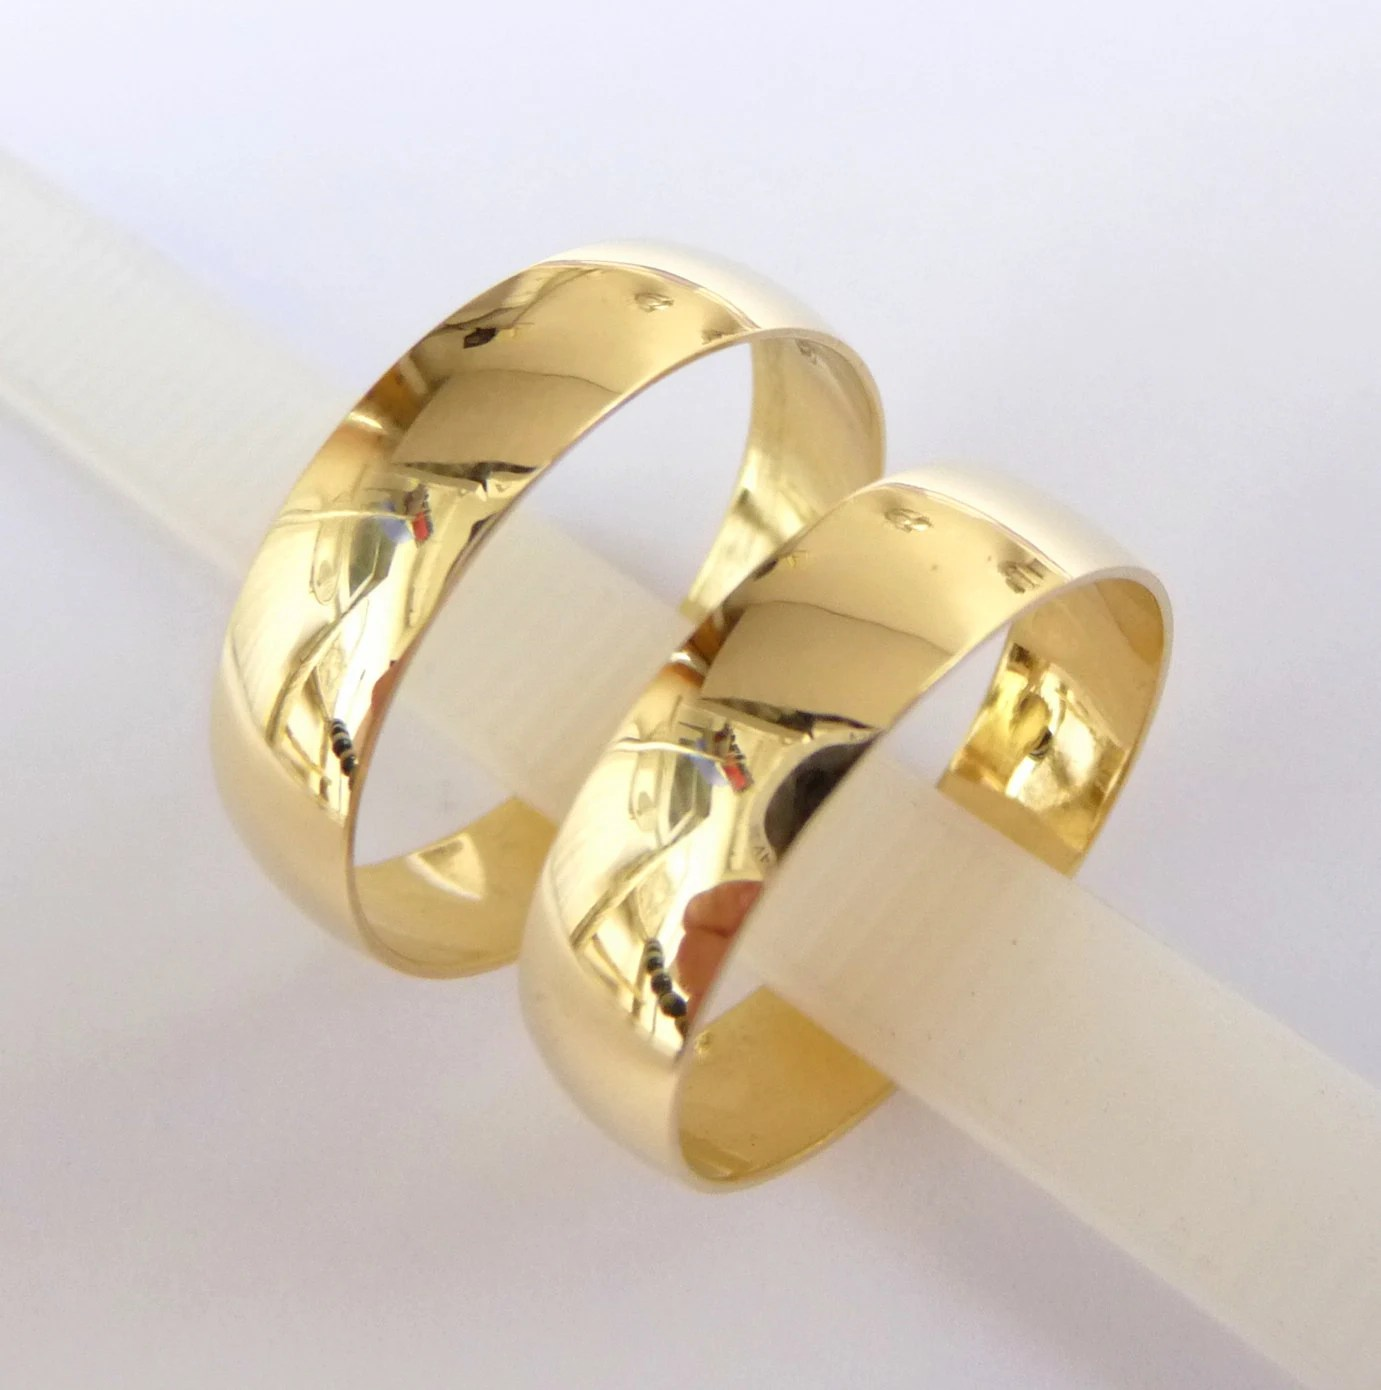 wedding bands set womens mens wedding wedding band rings Rings gold 5mm wide wedding bands zoom